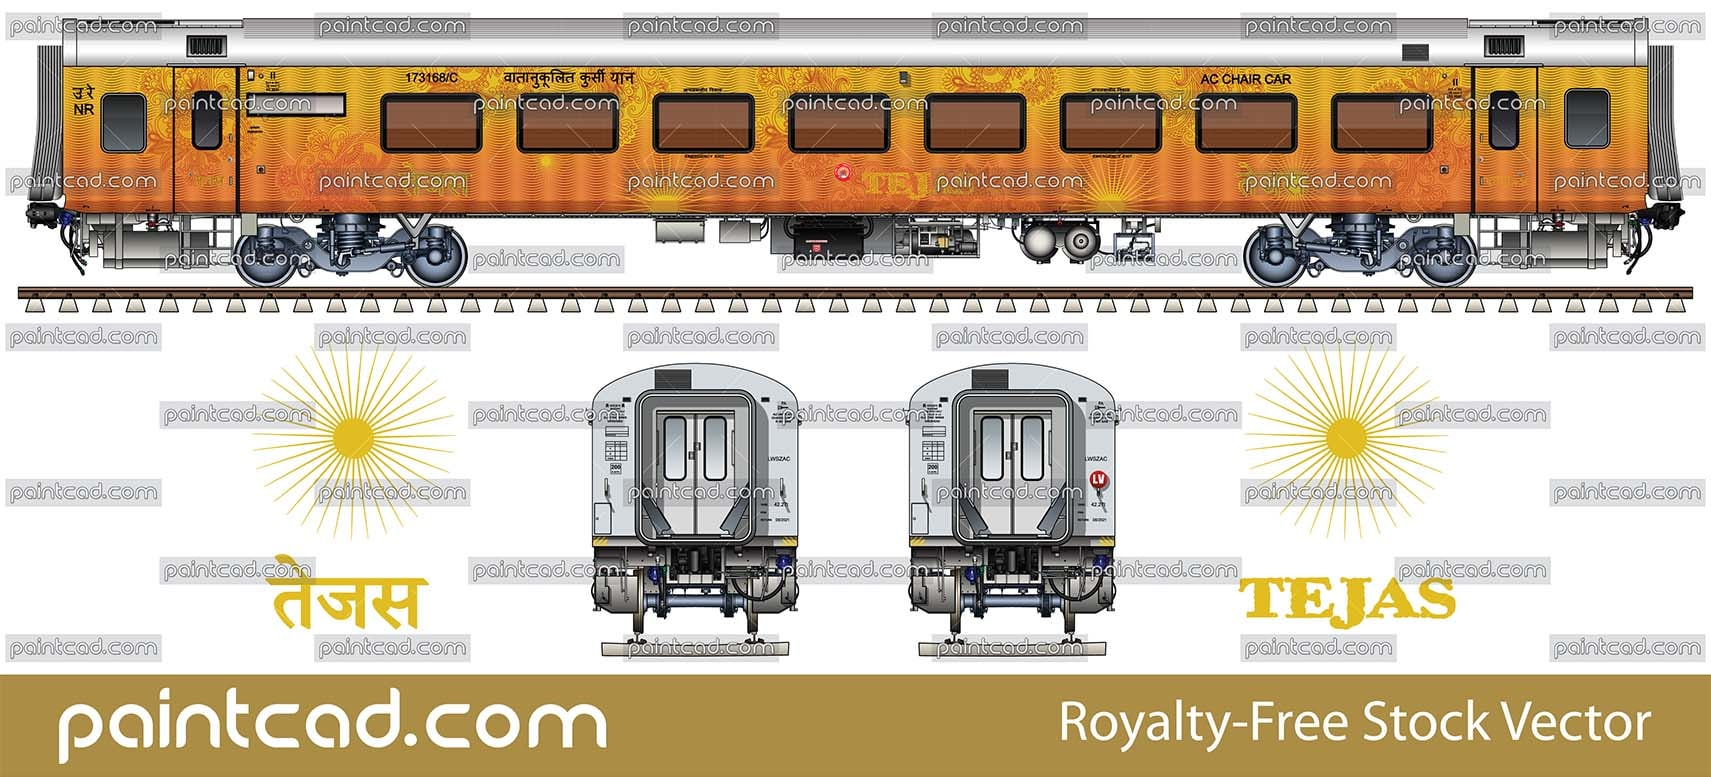 Luxury AC CHAIR CAR by New Delhi - Chandigarh Tejas Express - vector illustration